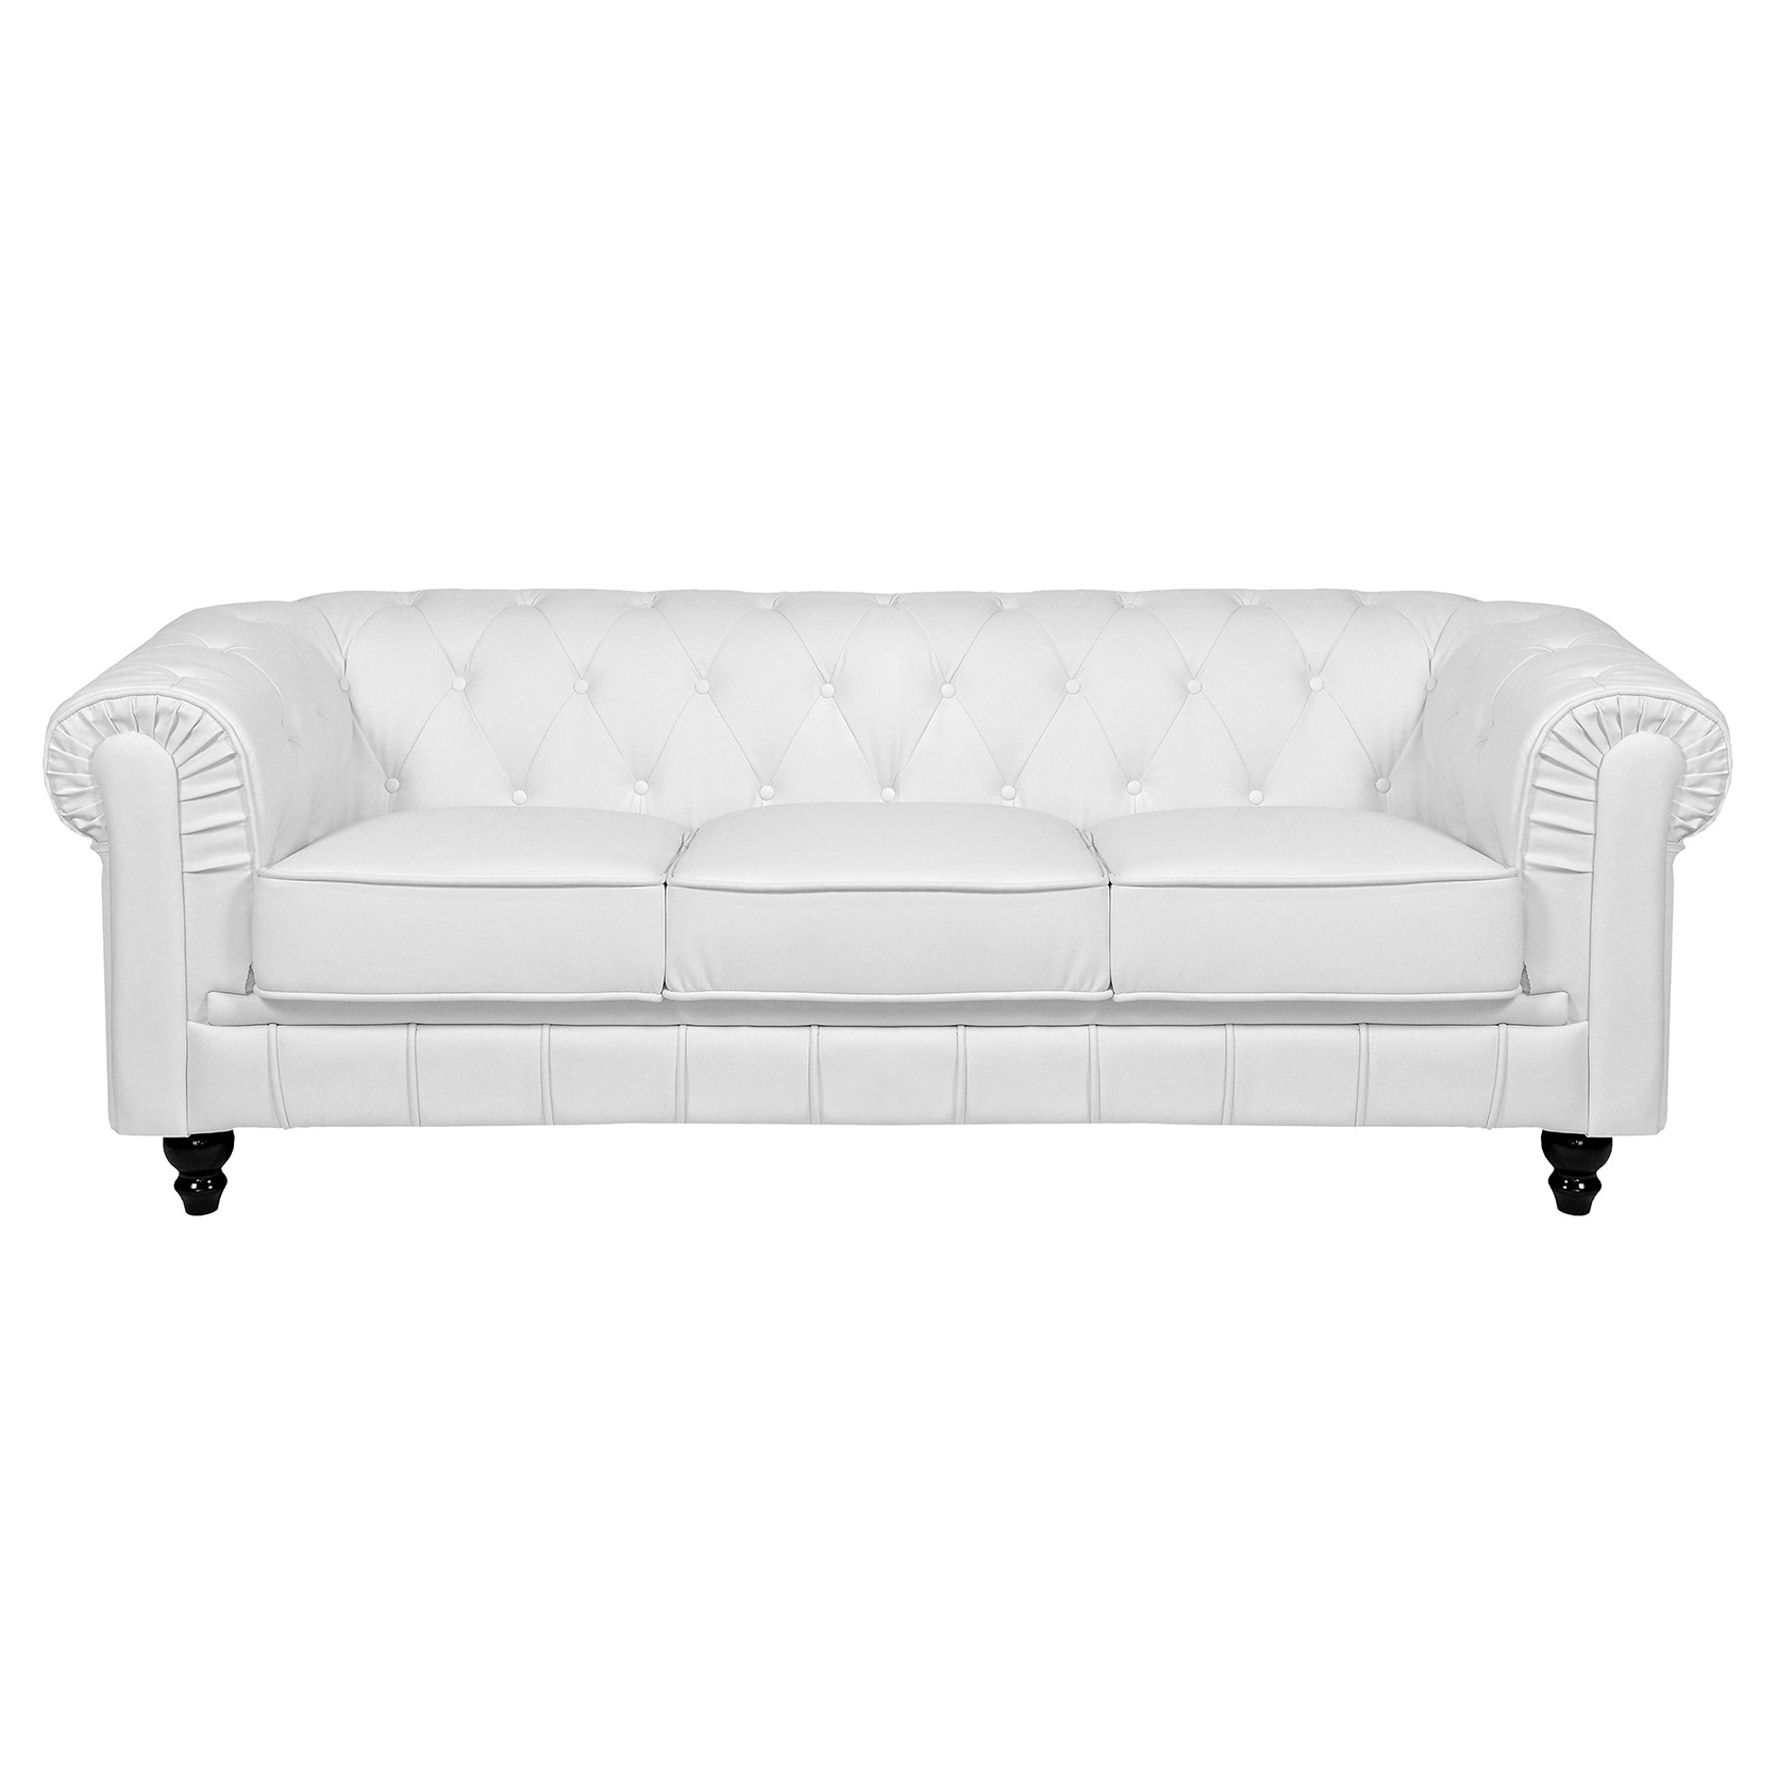 Deco in paris canape 3 places blanc chesterfield can chester 3p pu blanc - Canape 3 places blanc ...